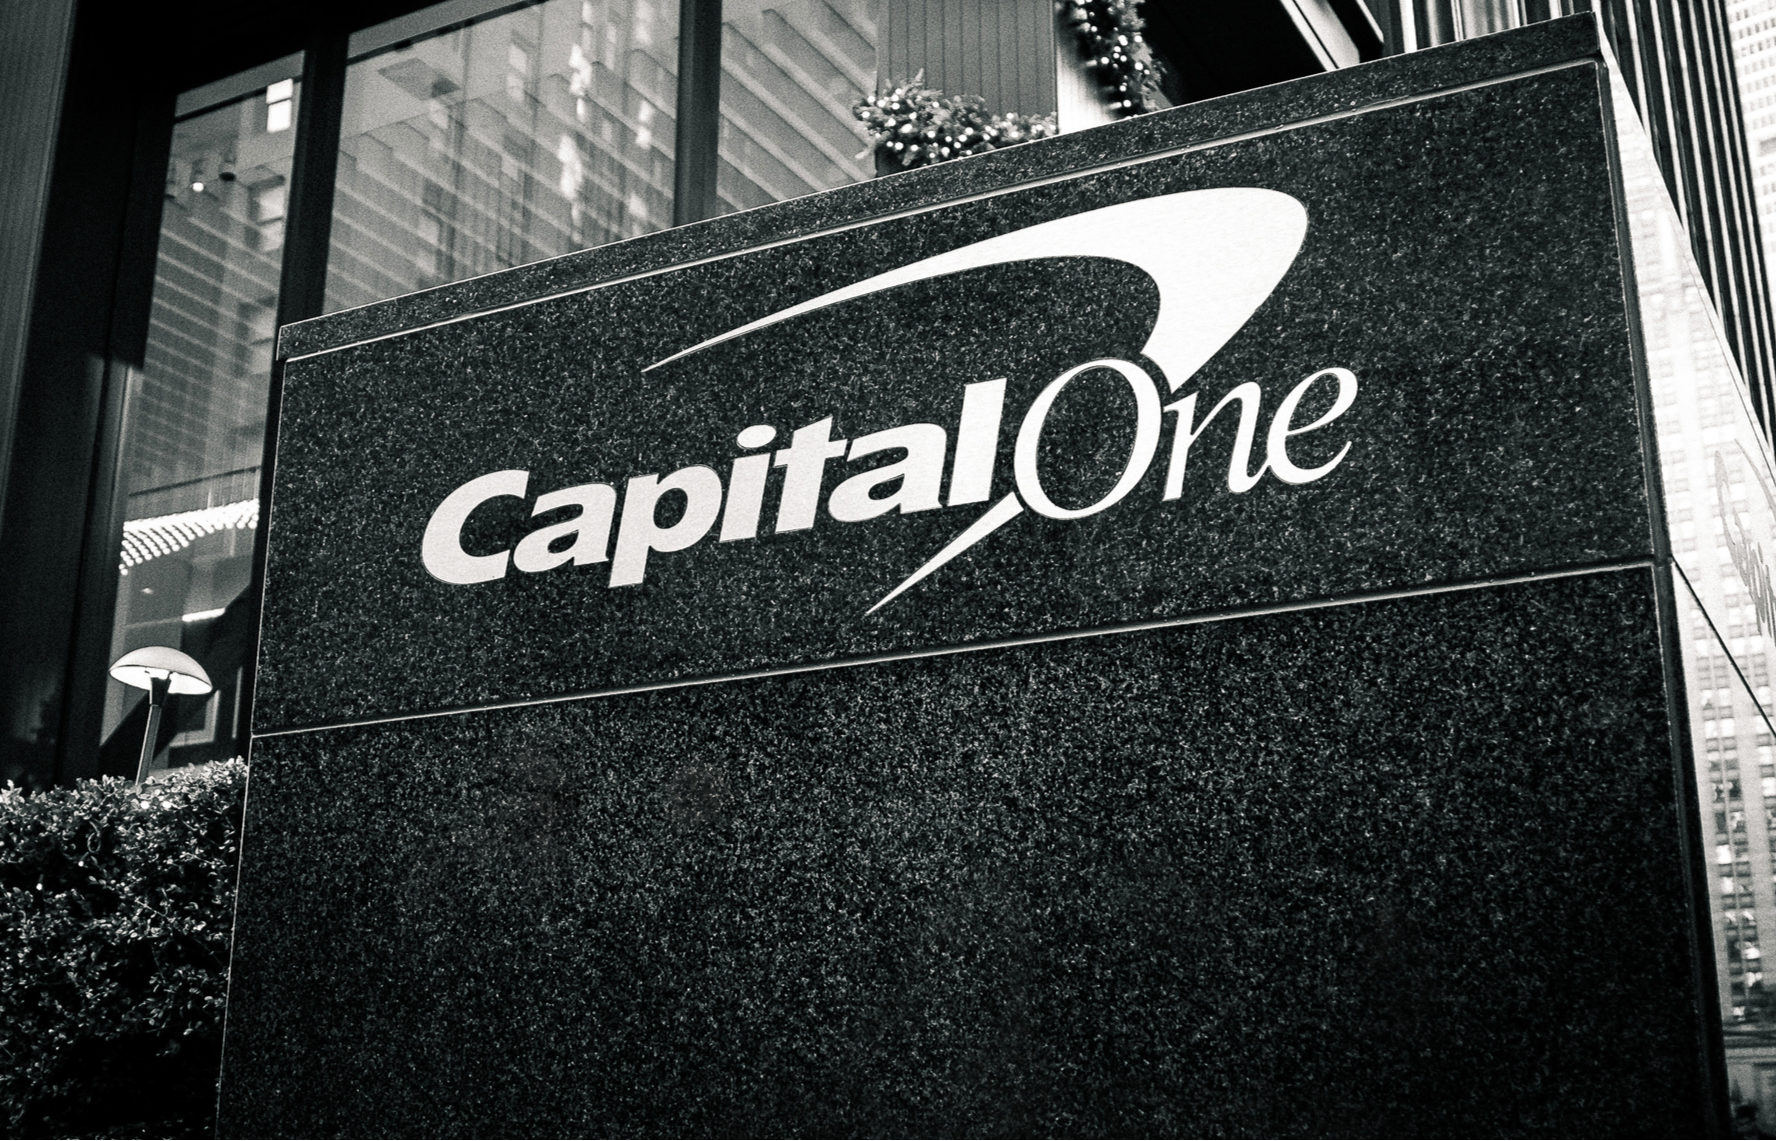 Capital One breach: What was stolen in the mega hack and how?